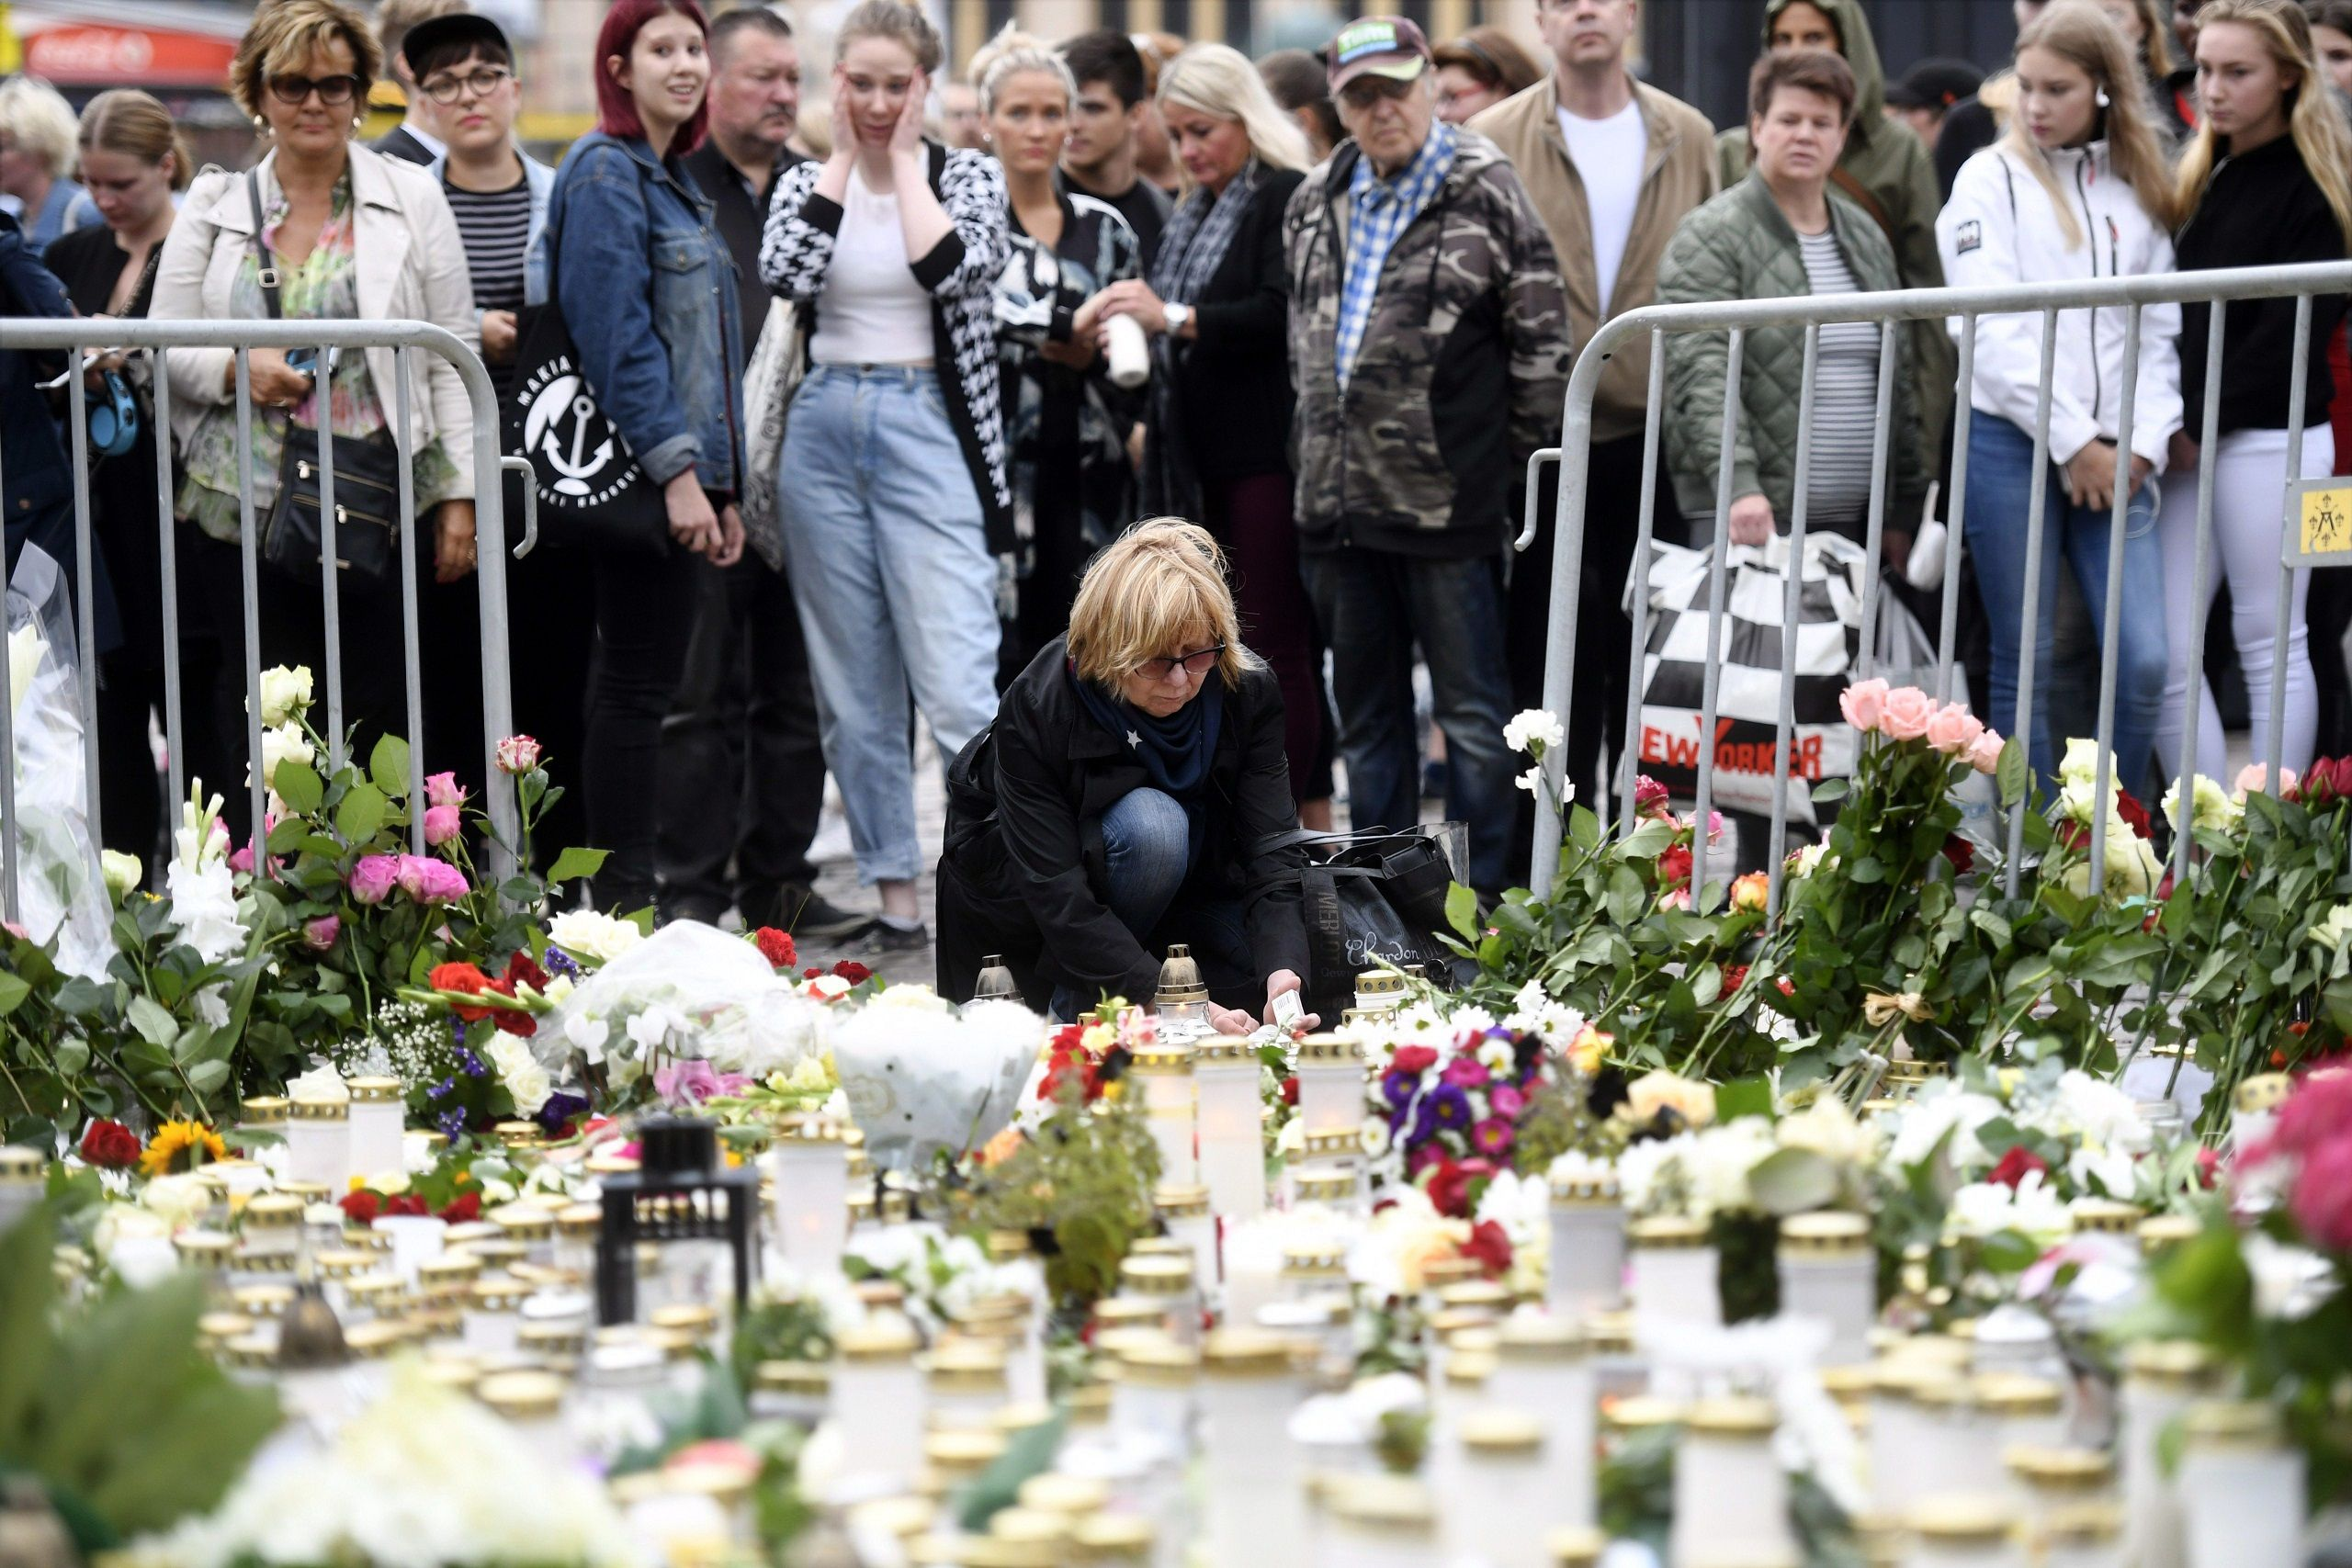 Finland stabbing spree was likely a terror attack targeting women, police say